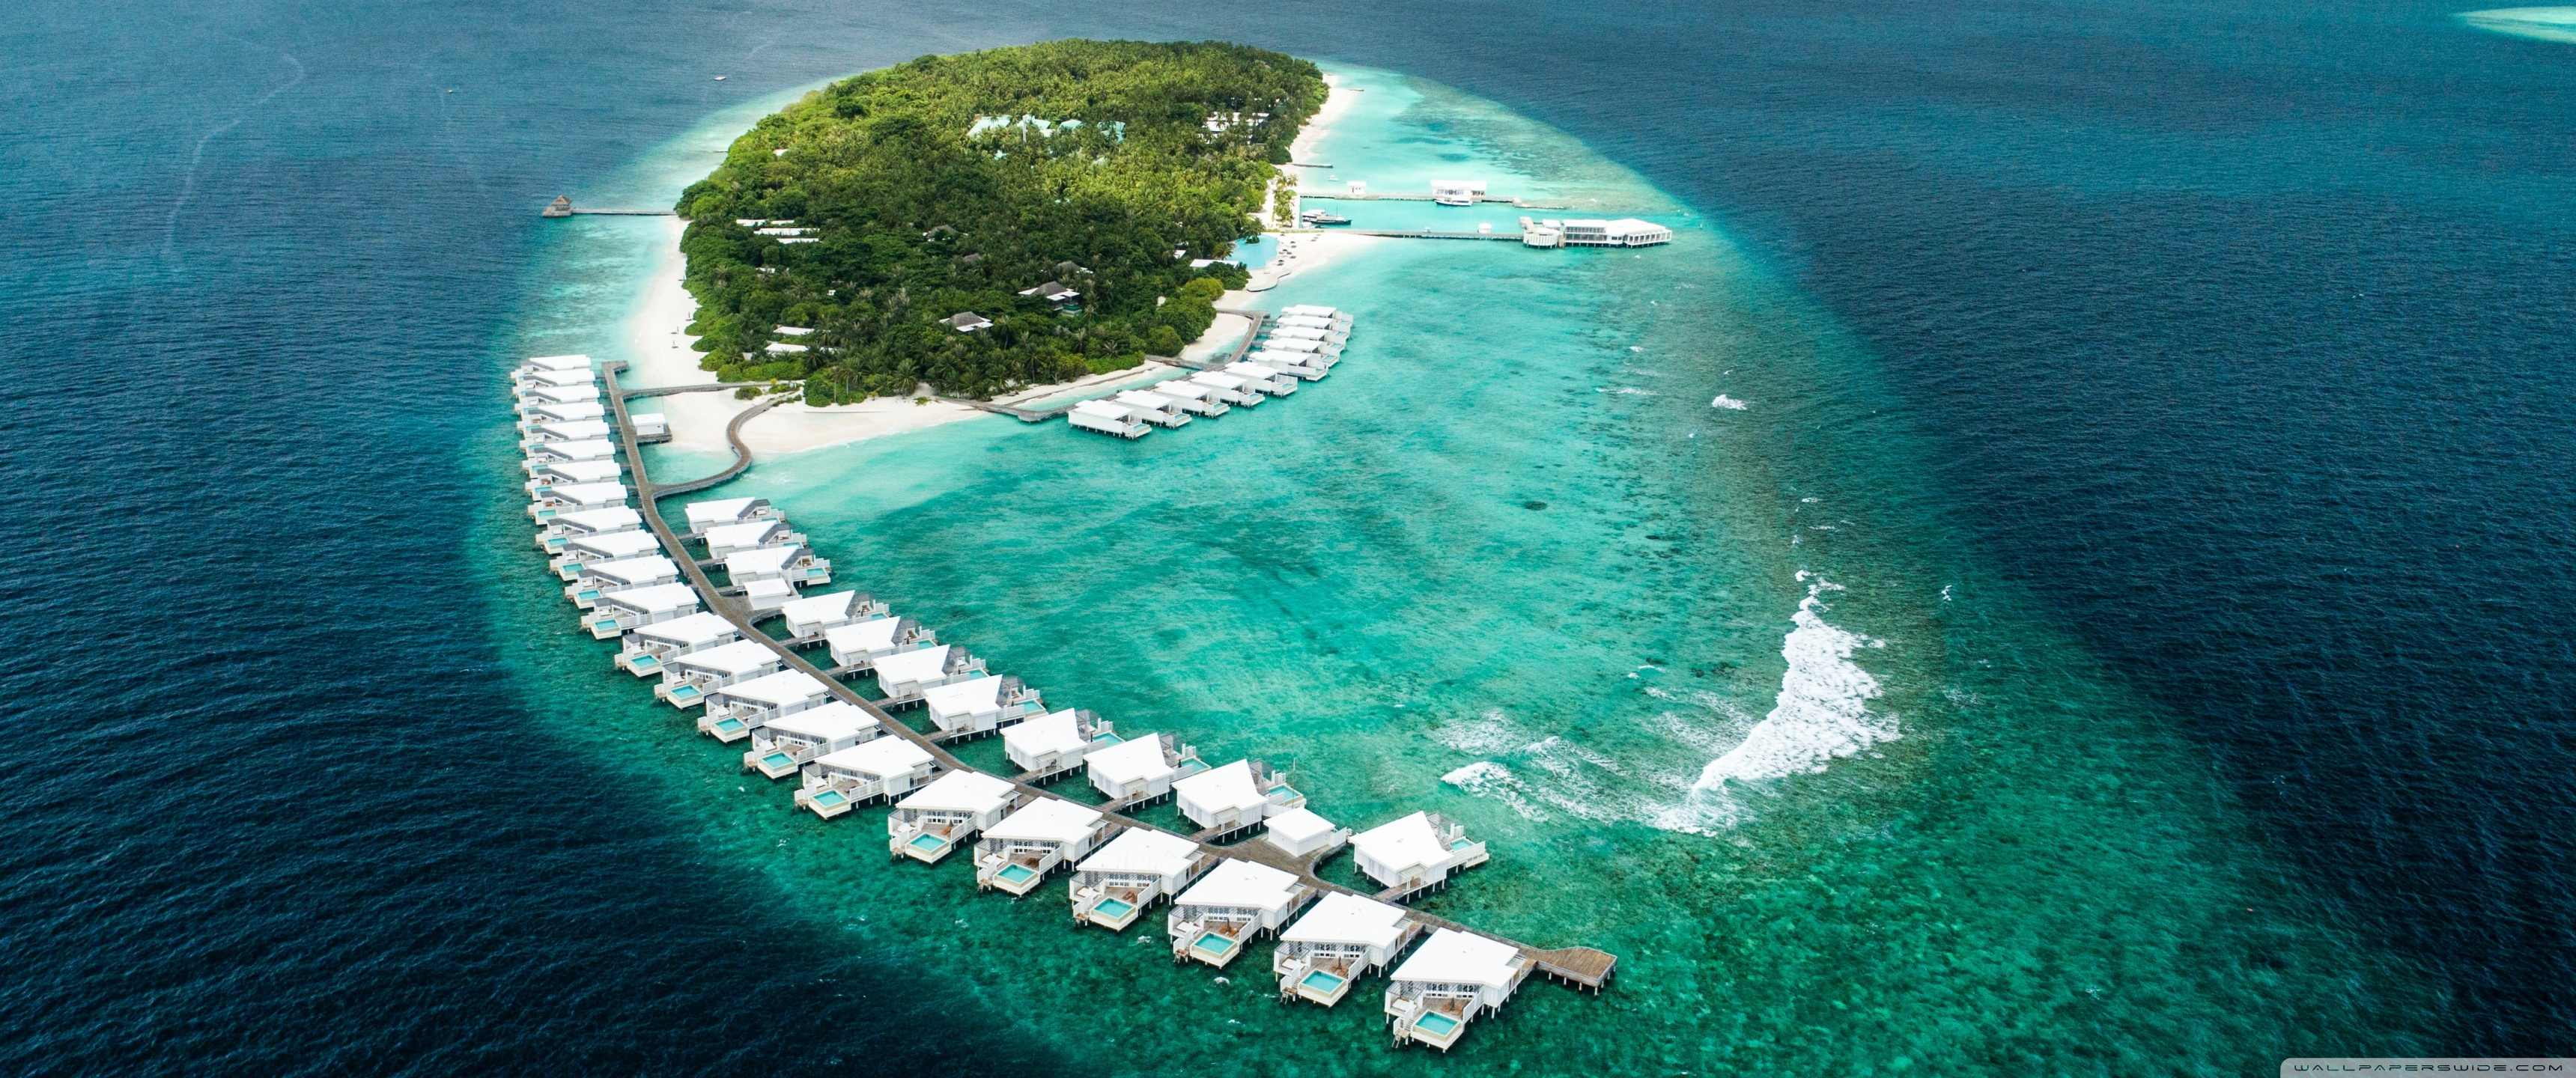 maldives_island_resort_aerial_view-wallpaper-3440x1440.jpg